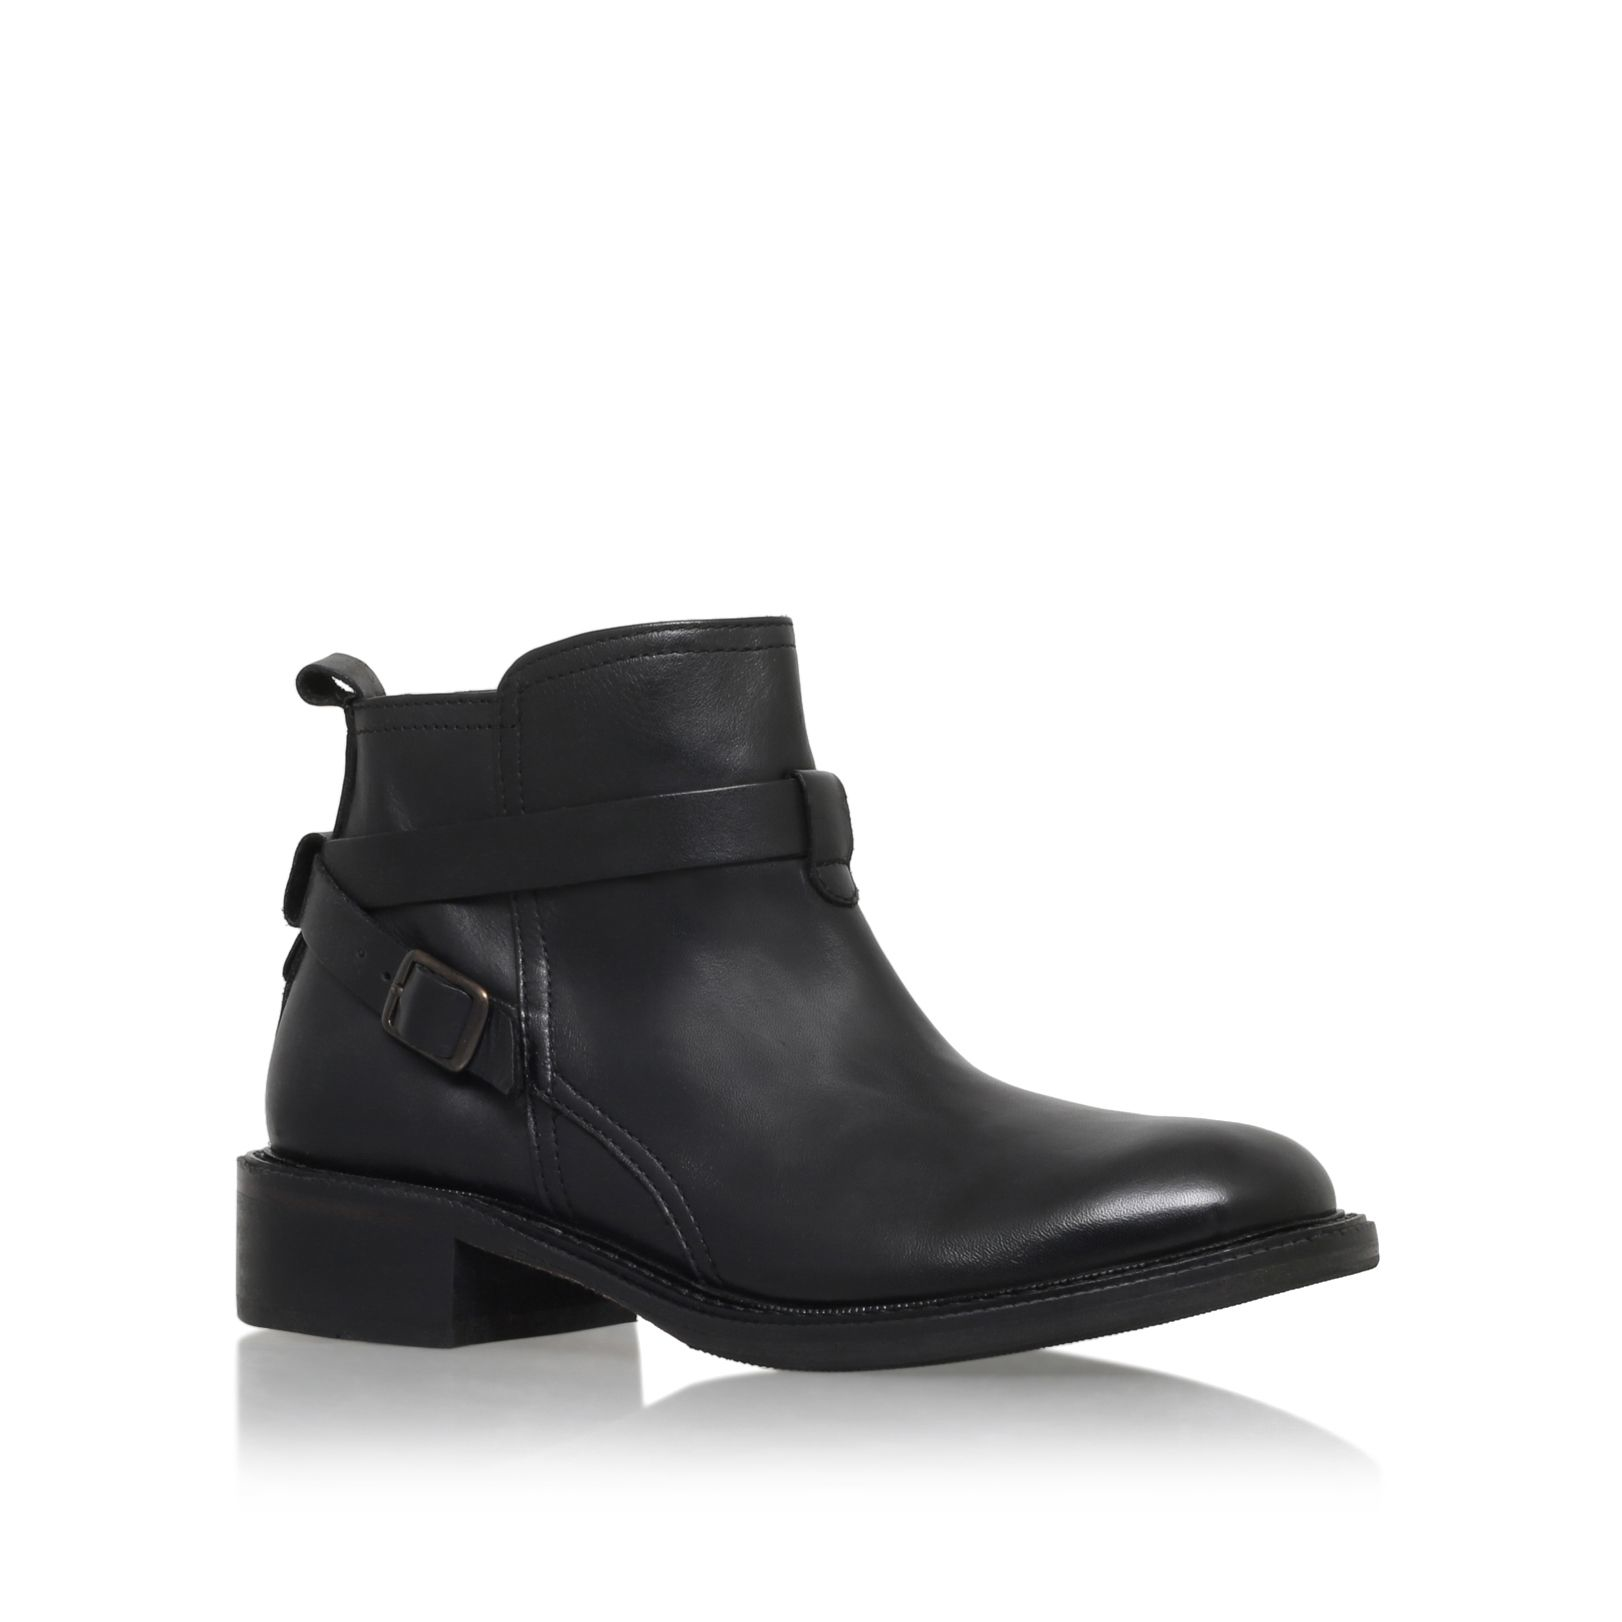 h by hudson sachs low heel ankle boots in black lyst